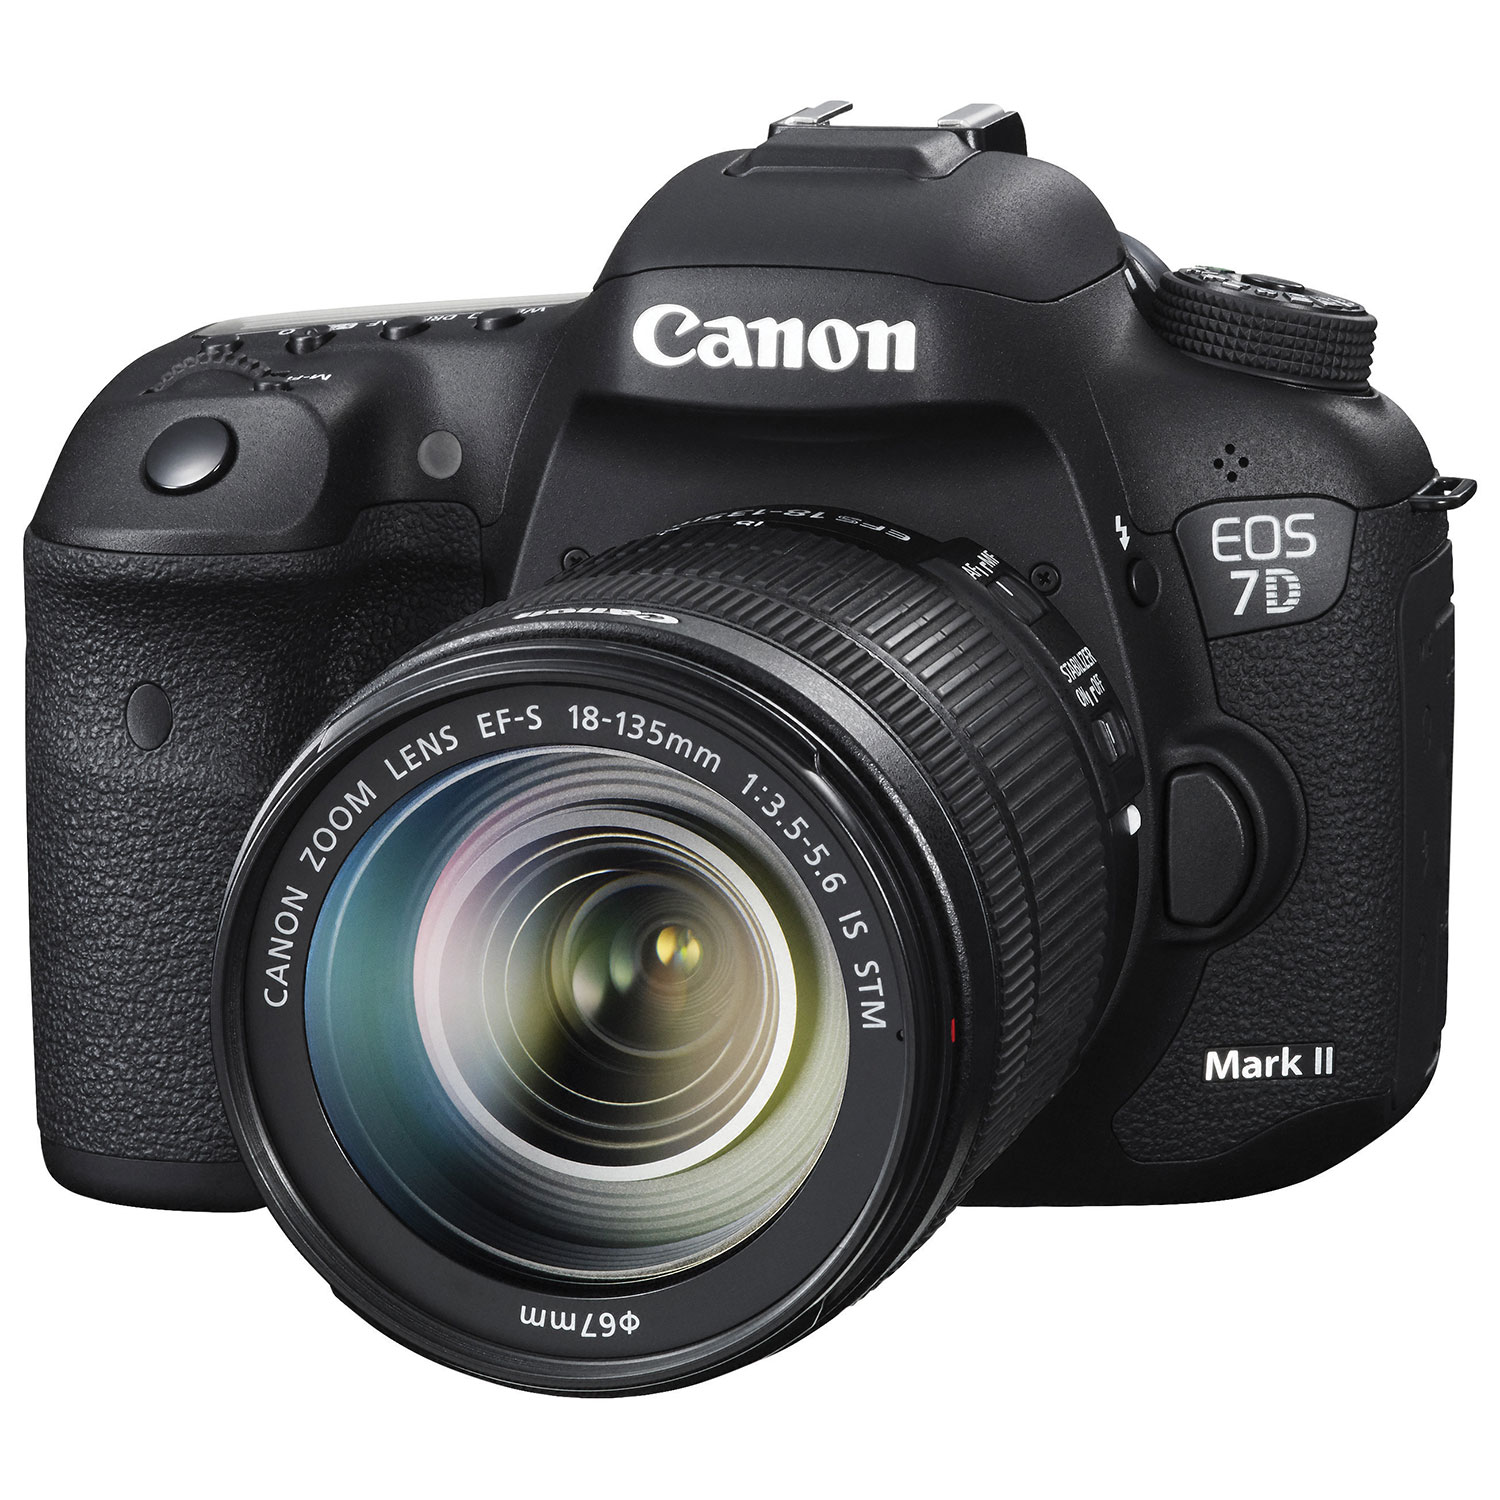 Camera Dslr Camera Deals Canada canon eos 7d mark ii dslr camera with 18 135mm is stm lens kit kits best buy canada